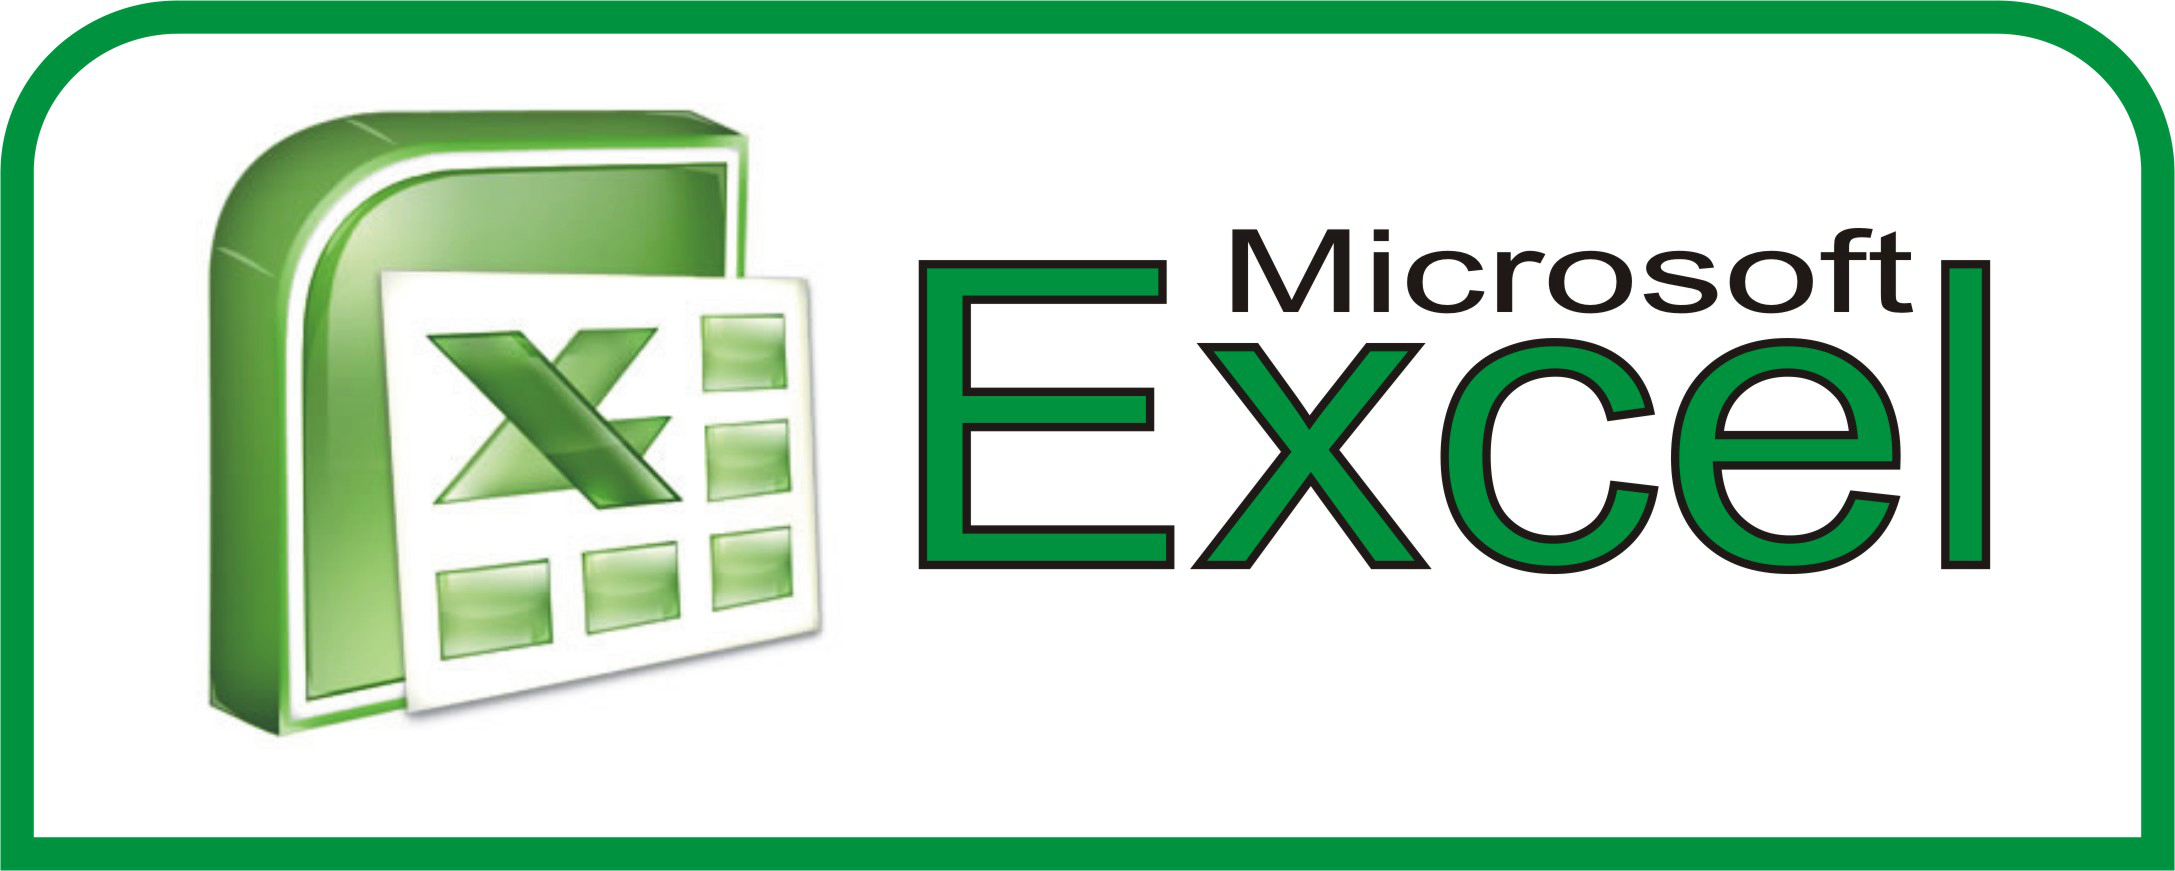 Ediblewildsus  Stunning  Excel Shortcuts You Probably Didnt Know About  Techdissected With Goodlooking How To Draw Graphs In Excel Besides Excel If Conditional Formatting Furthermore Npv Excel Example With Comely D Graph In Excel Also Excel Solver Add In Mac In Addition Standard Deviation Error Bars Excel And Regression Function In Excel As Well As Excel Online Training Free Additionally How To Make Labels From Excel Spreadsheet From Techdissectedcom With Ediblewildsus  Goodlooking  Excel Shortcuts You Probably Didnt Know About  Techdissected With Comely How To Draw Graphs In Excel Besides Excel If Conditional Formatting Furthermore Npv Excel Example And Stunning D Graph In Excel Also Excel Solver Add In Mac In Addition Standard Deviation Error Bars Excel From Techdissectedcom